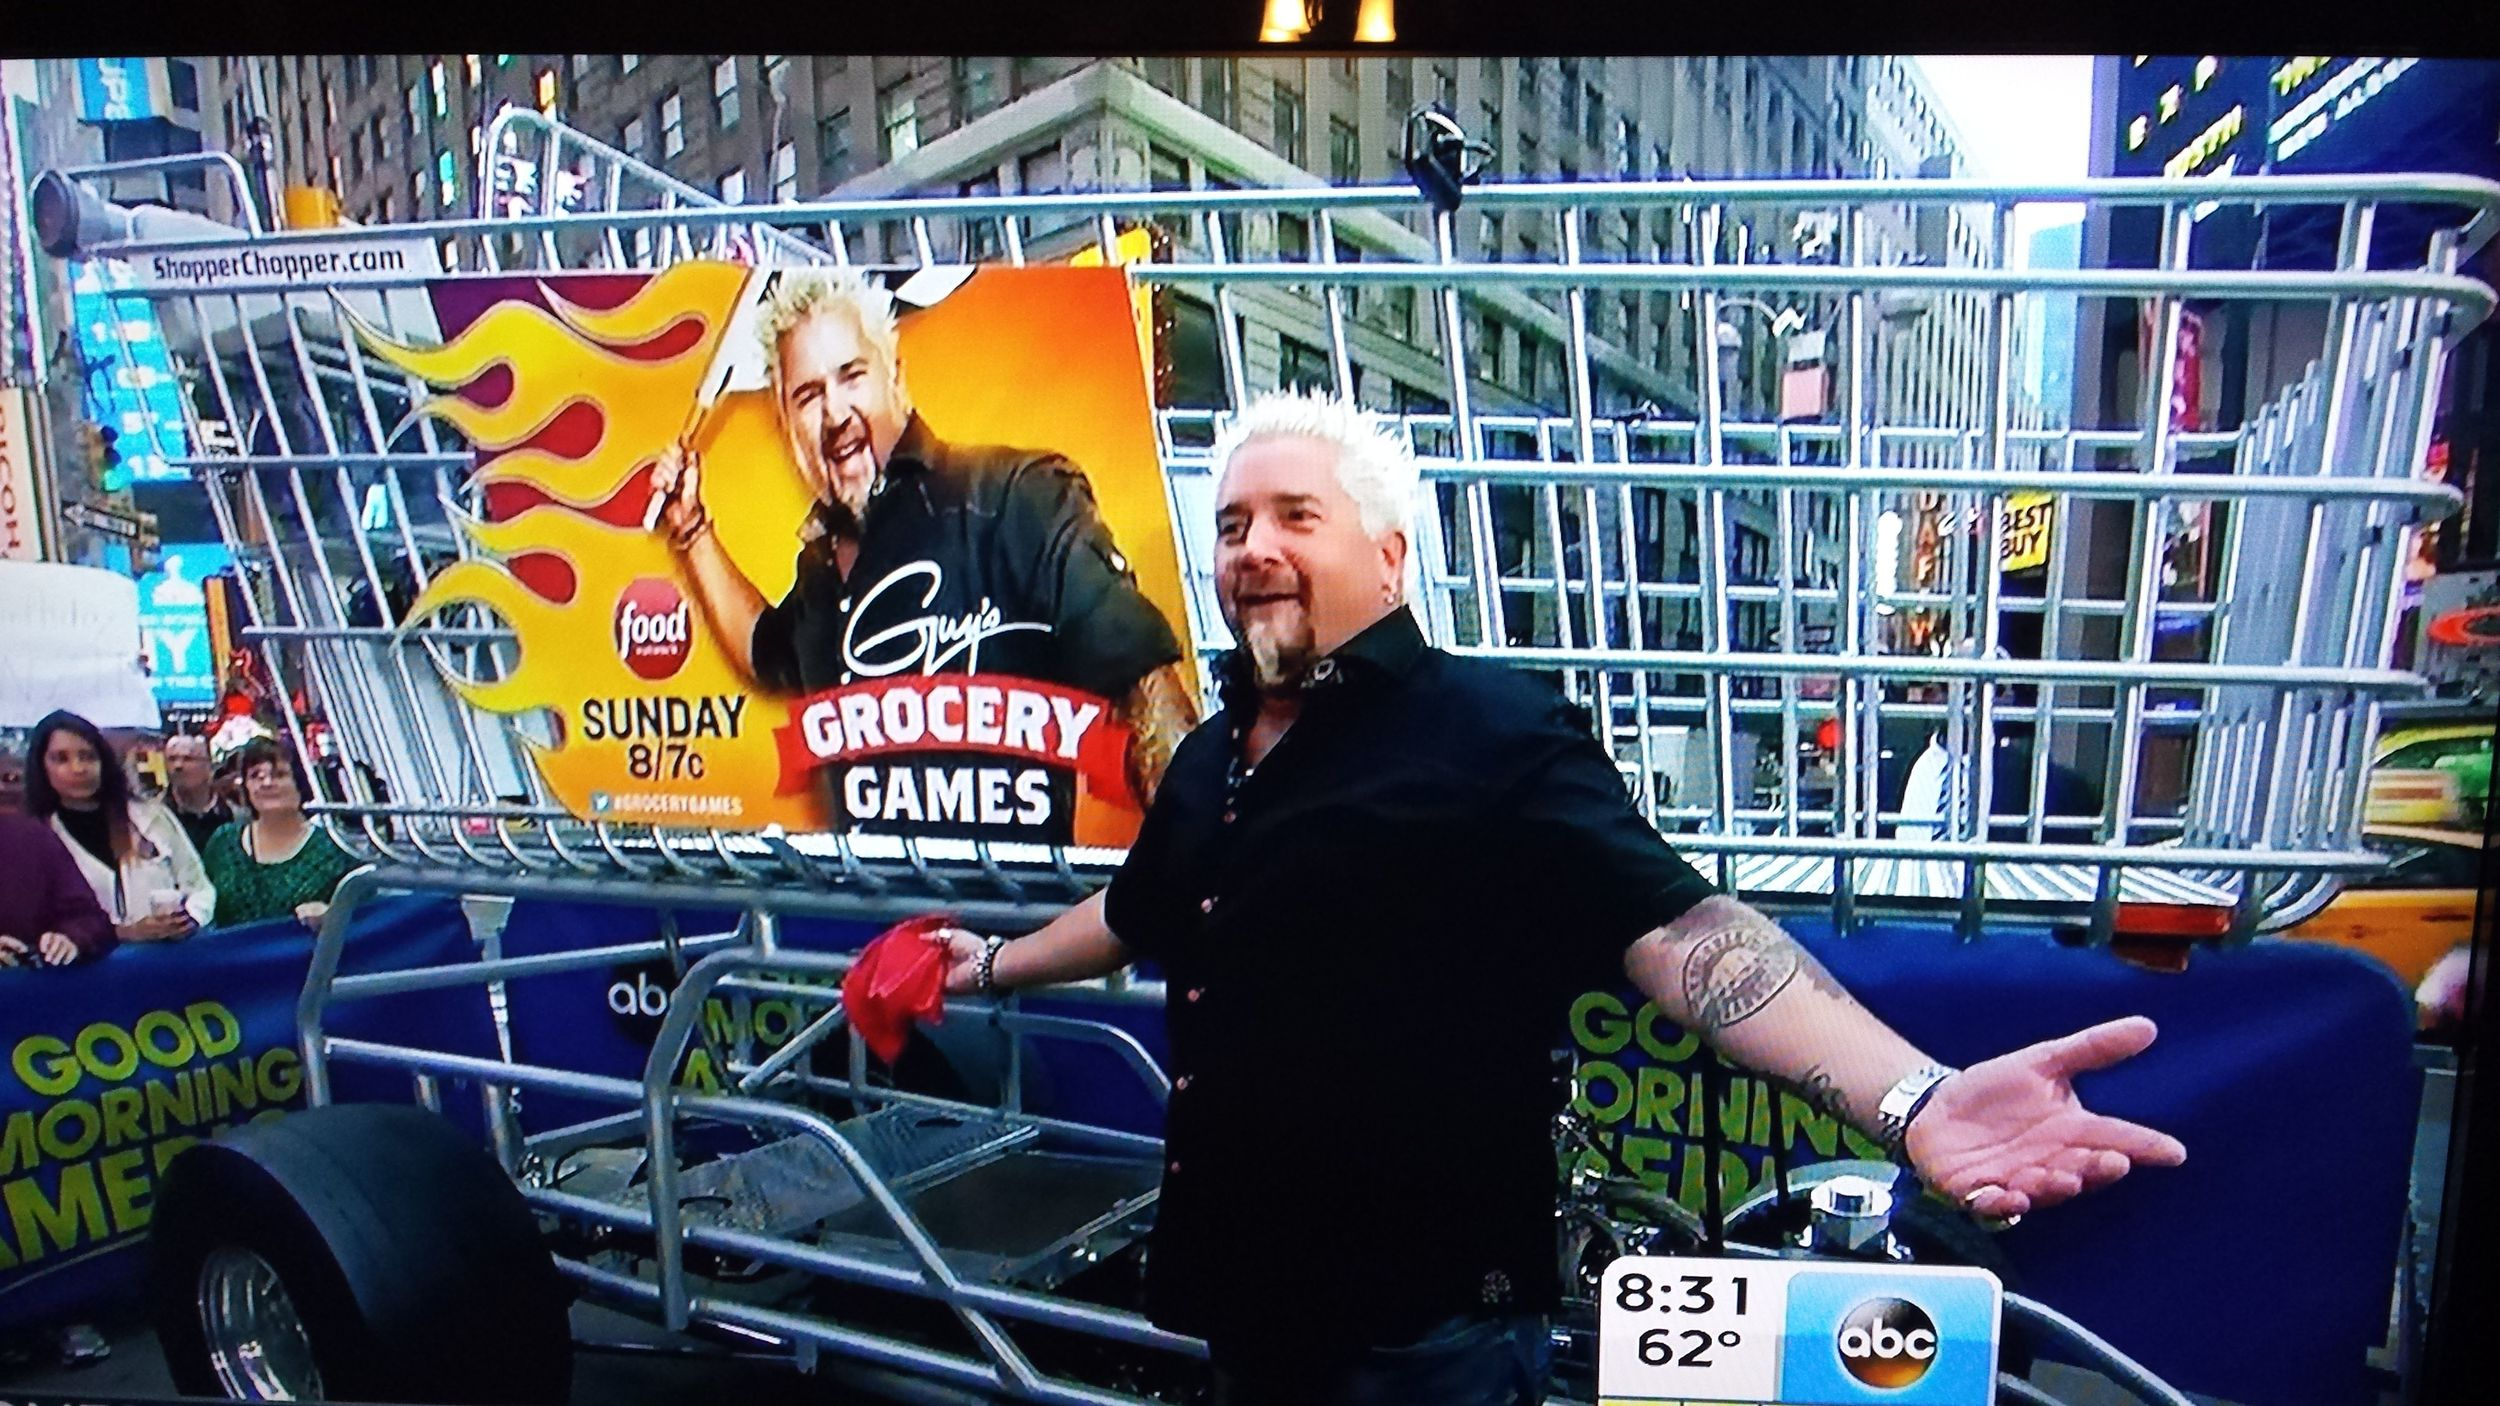 Mobile promotion of Guy's Grocery Games premier on Food Network.  Driving around Manhattan with a stop in Times Square for an appearance on Good Morning America